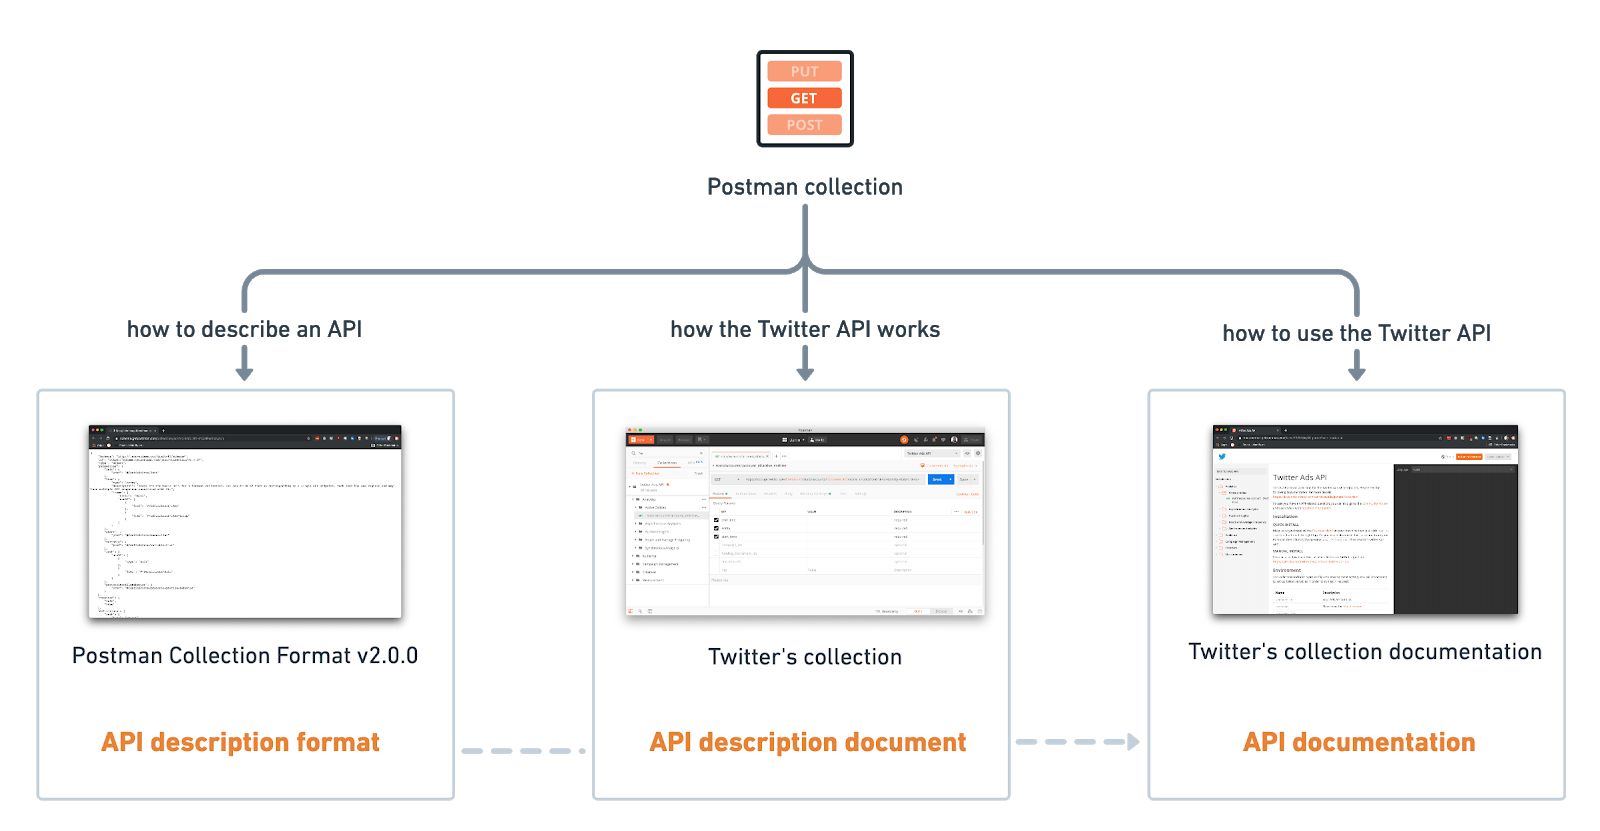 Bringing law and order to APIs with OpenAPI Specifications